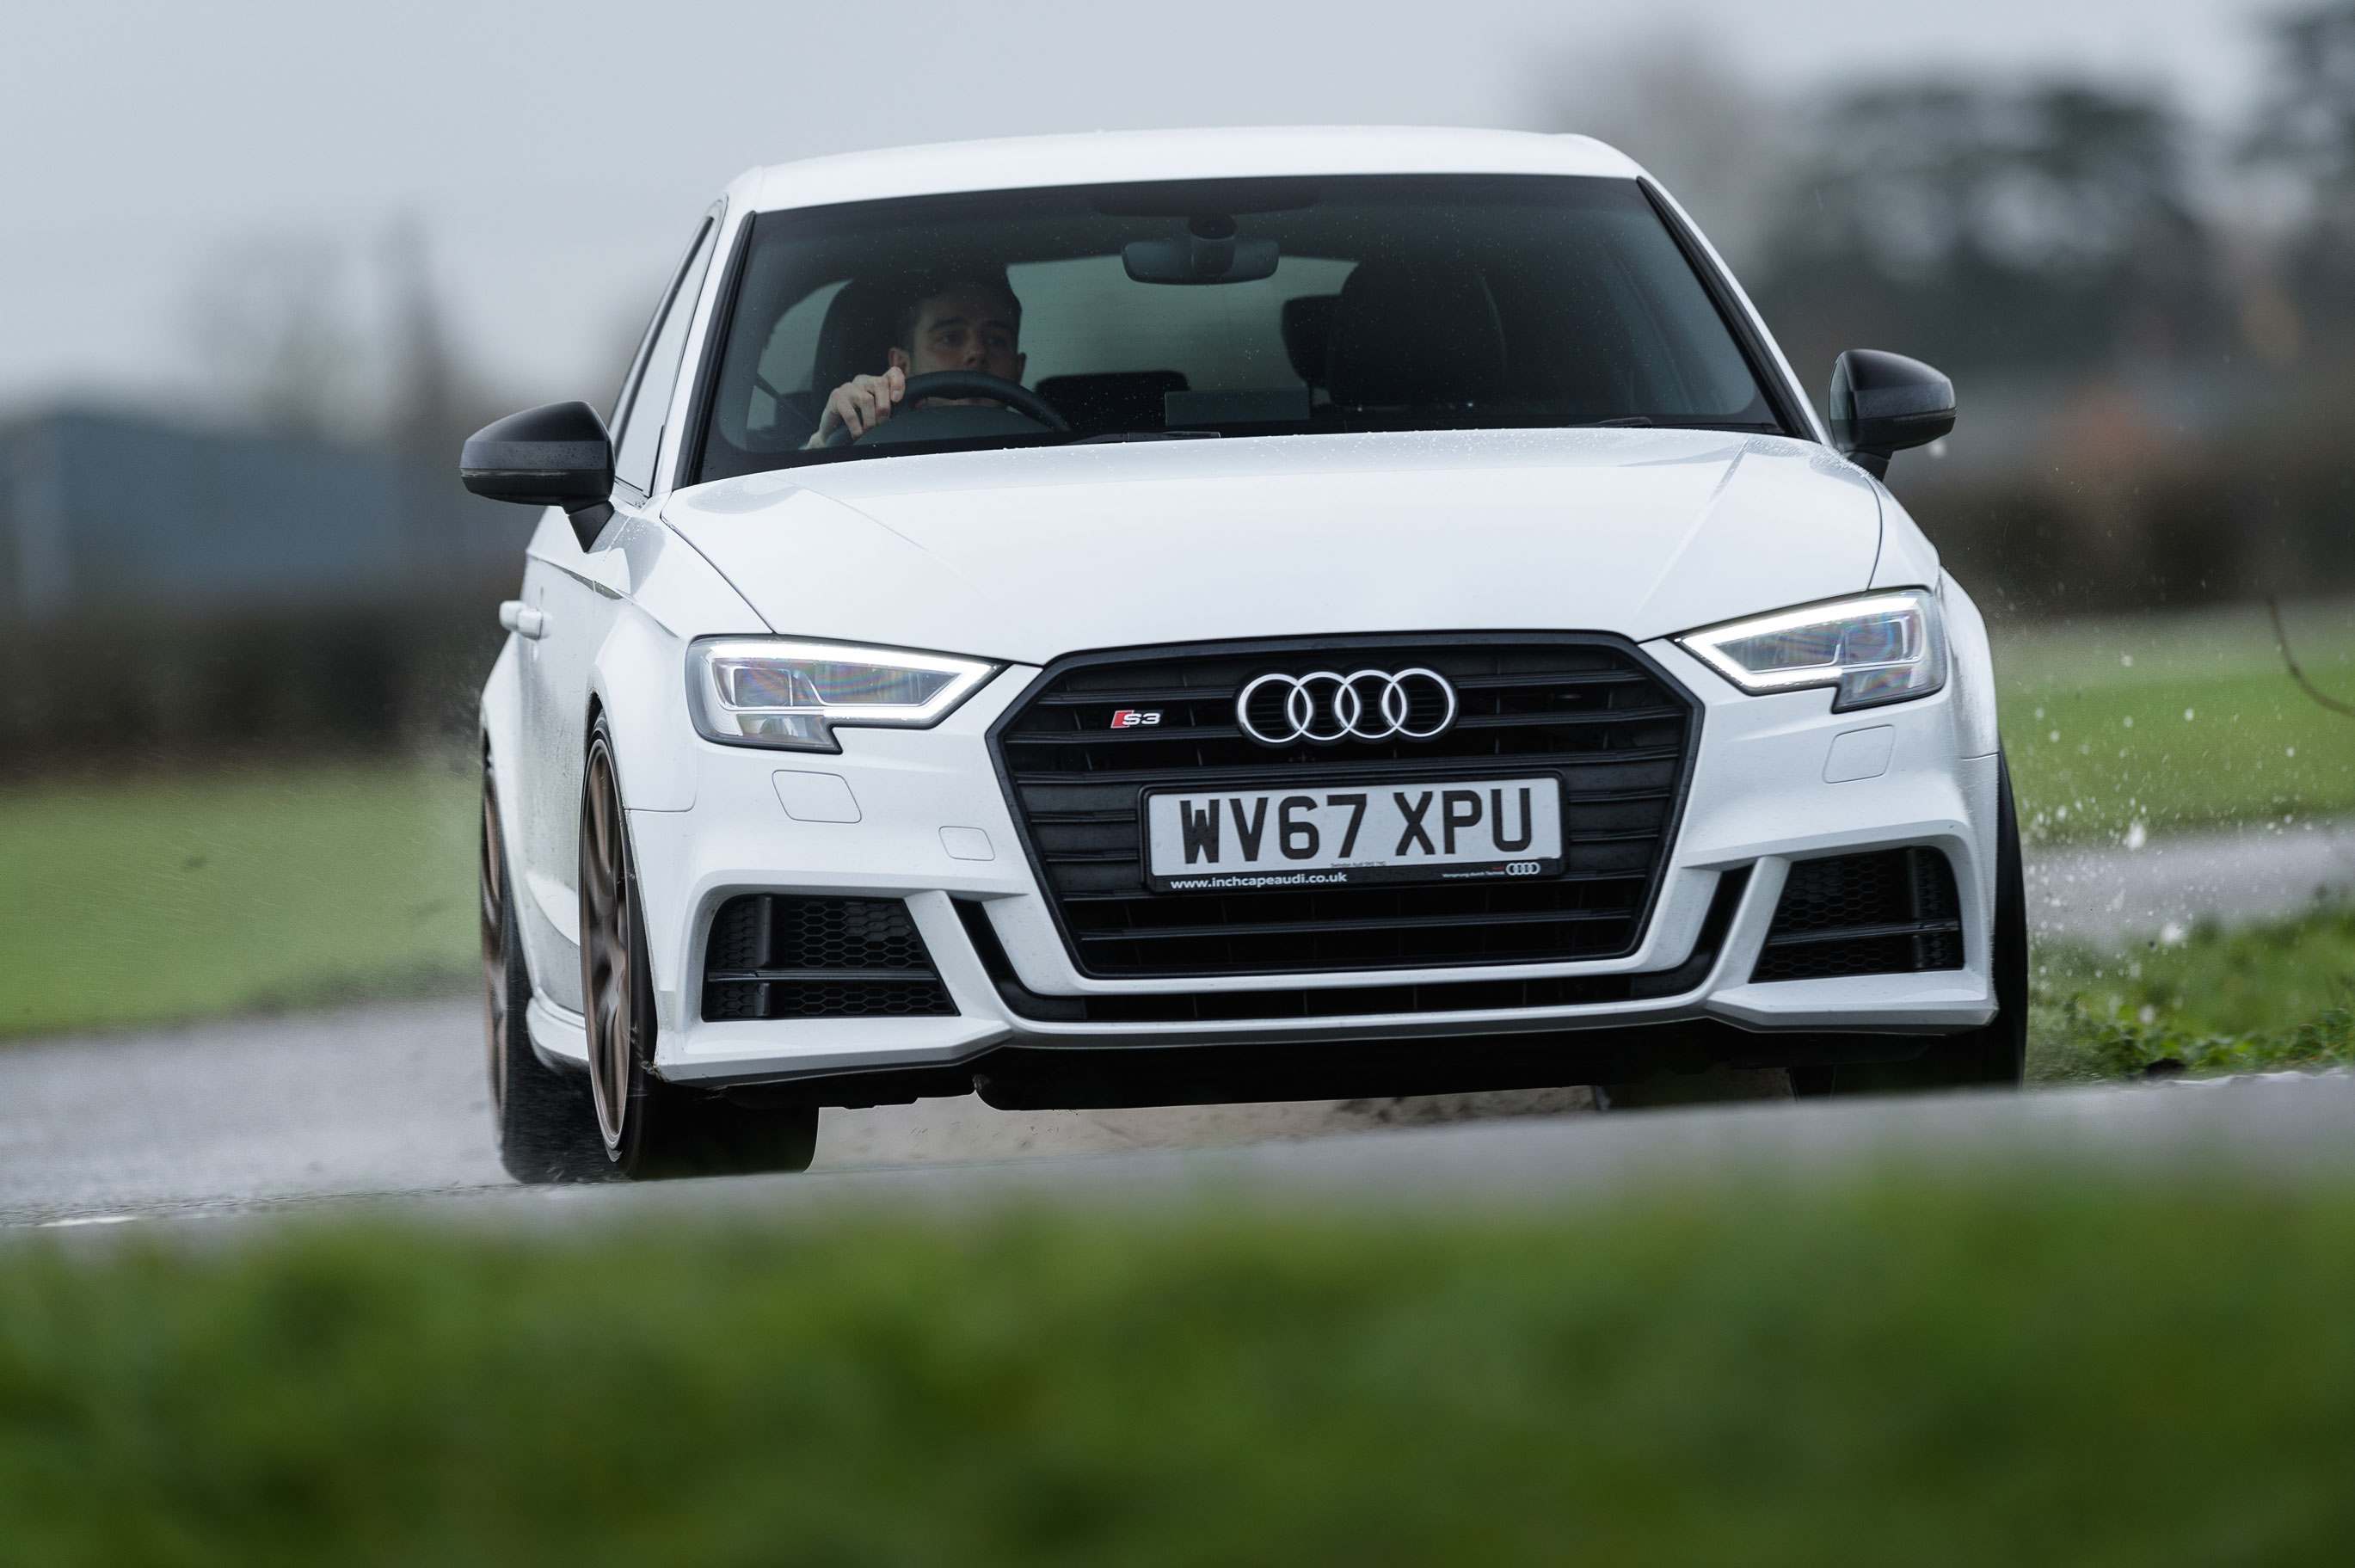 Revo Audi S3 review – has 370bhp ruined the Audi's refined